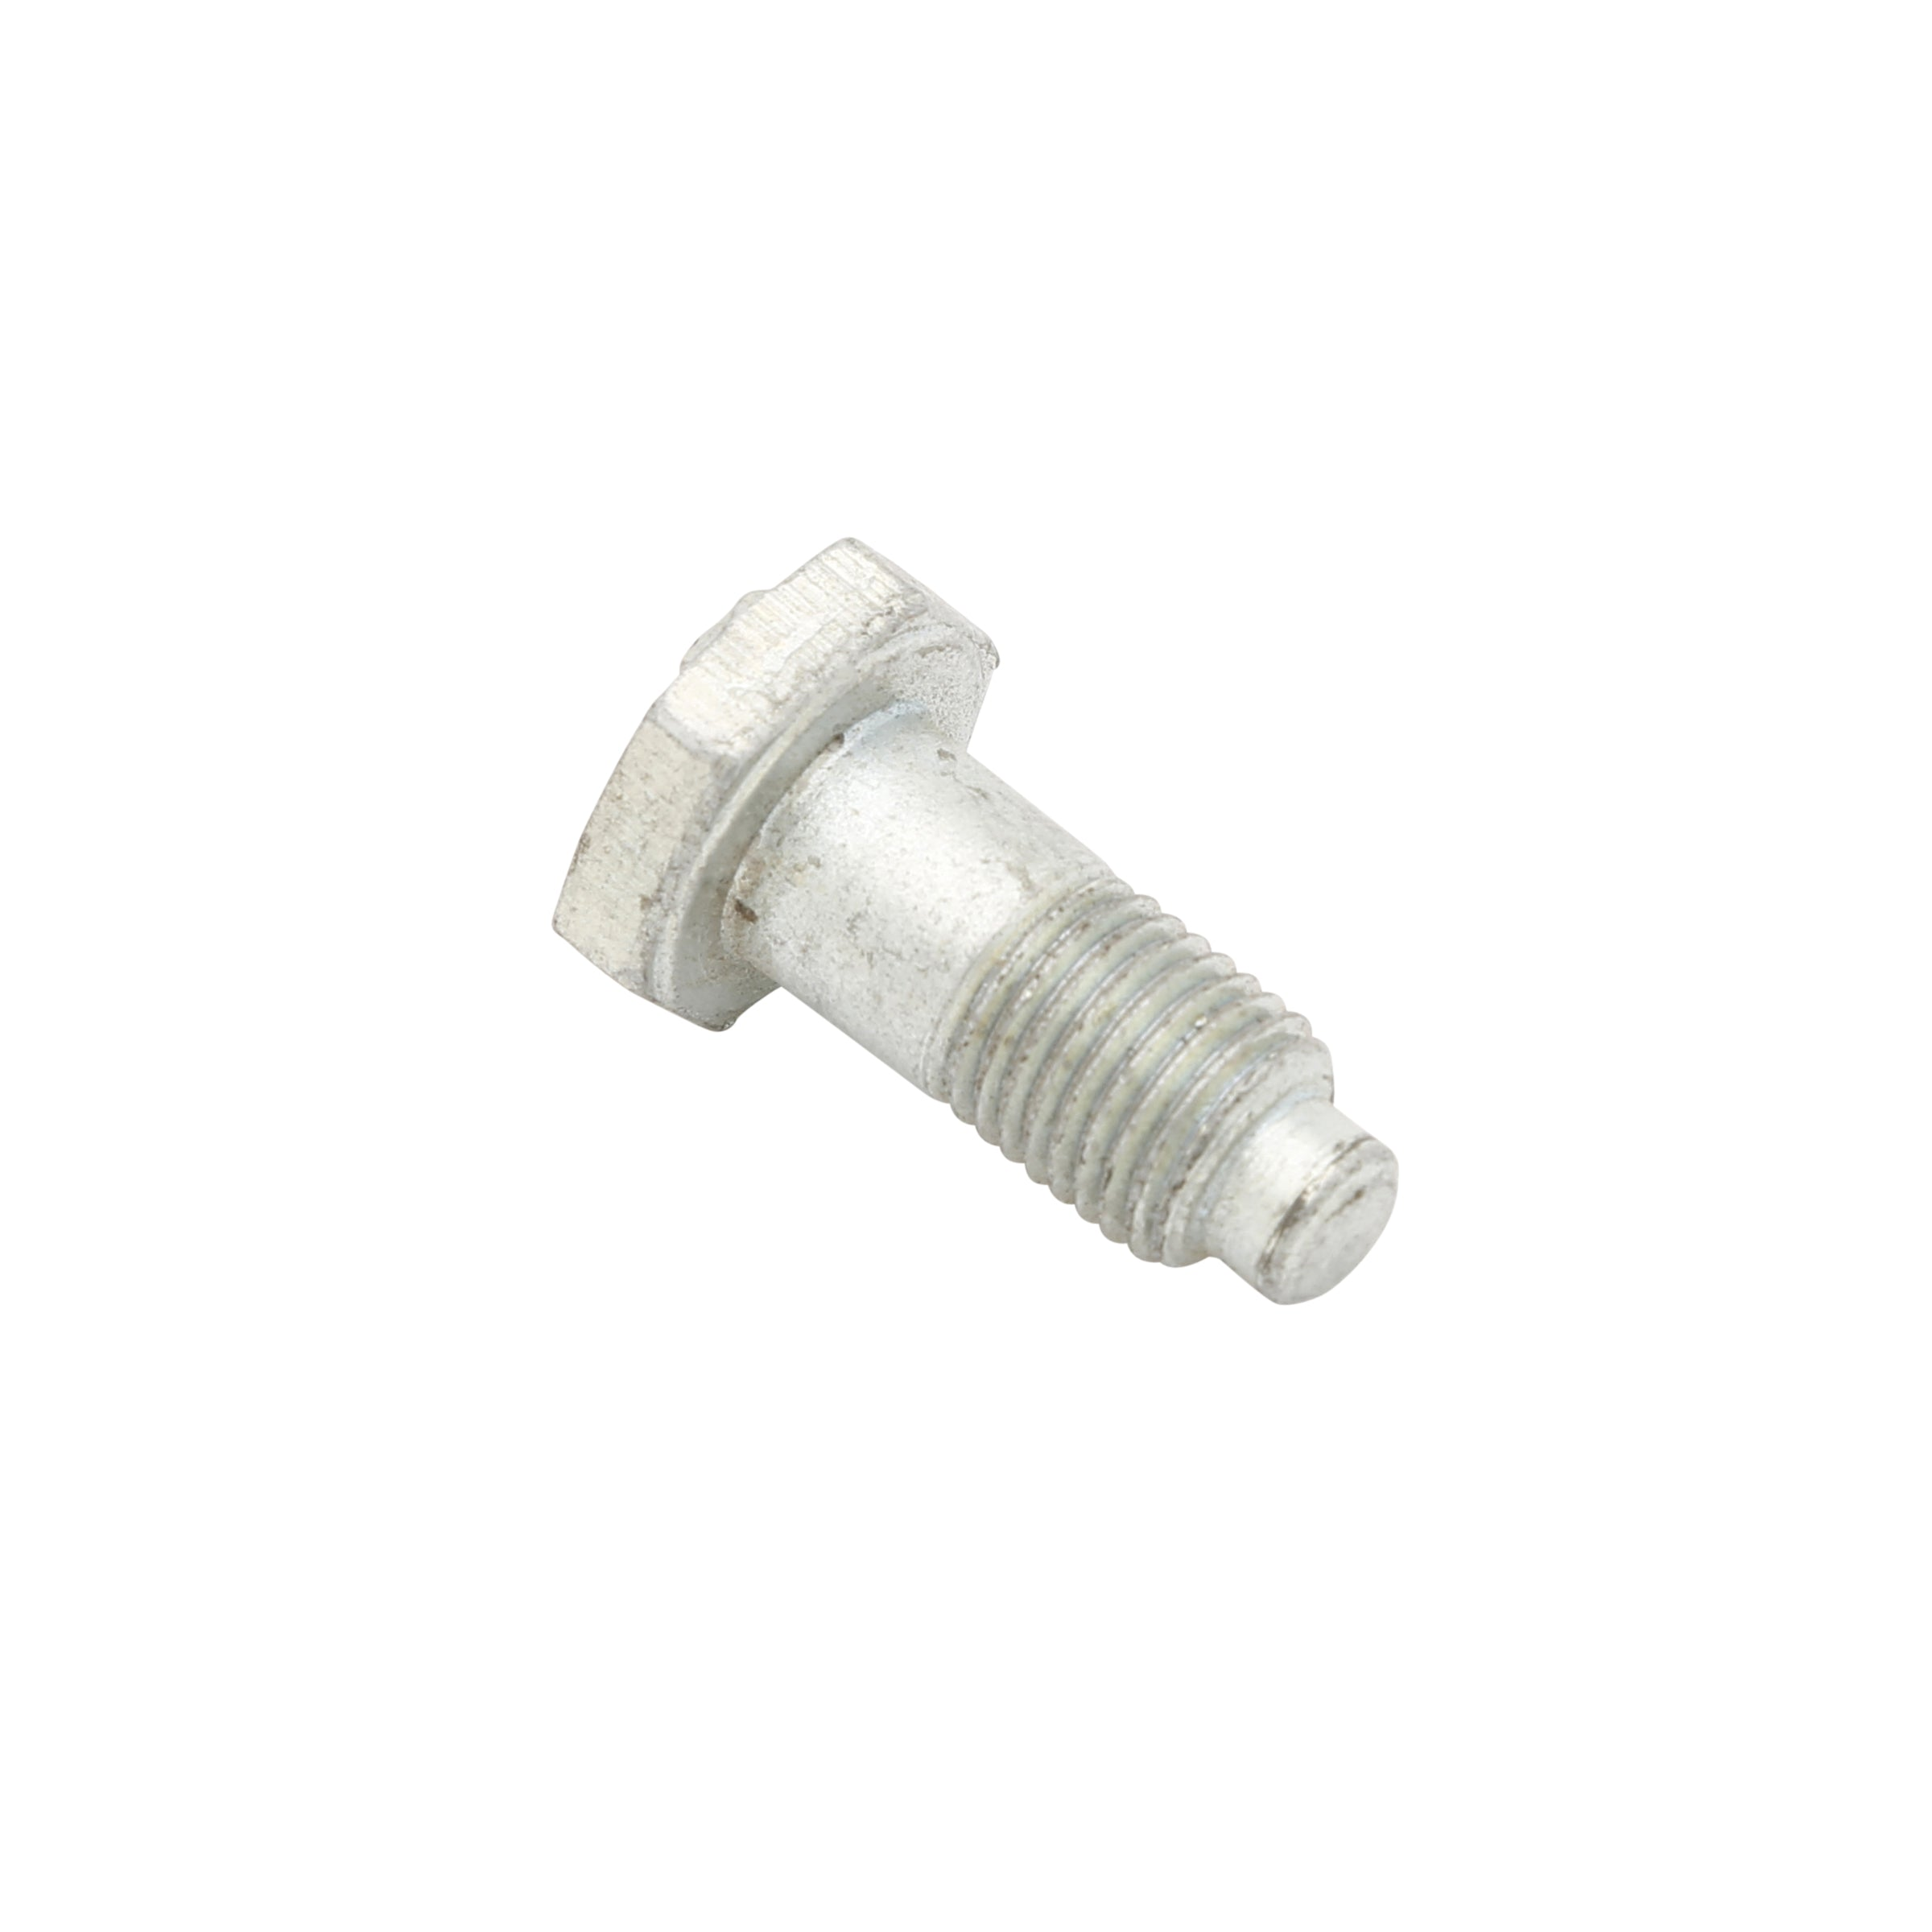 Starter Drive Head Screw (3/8 - With Tip) • 1928-48 Ford